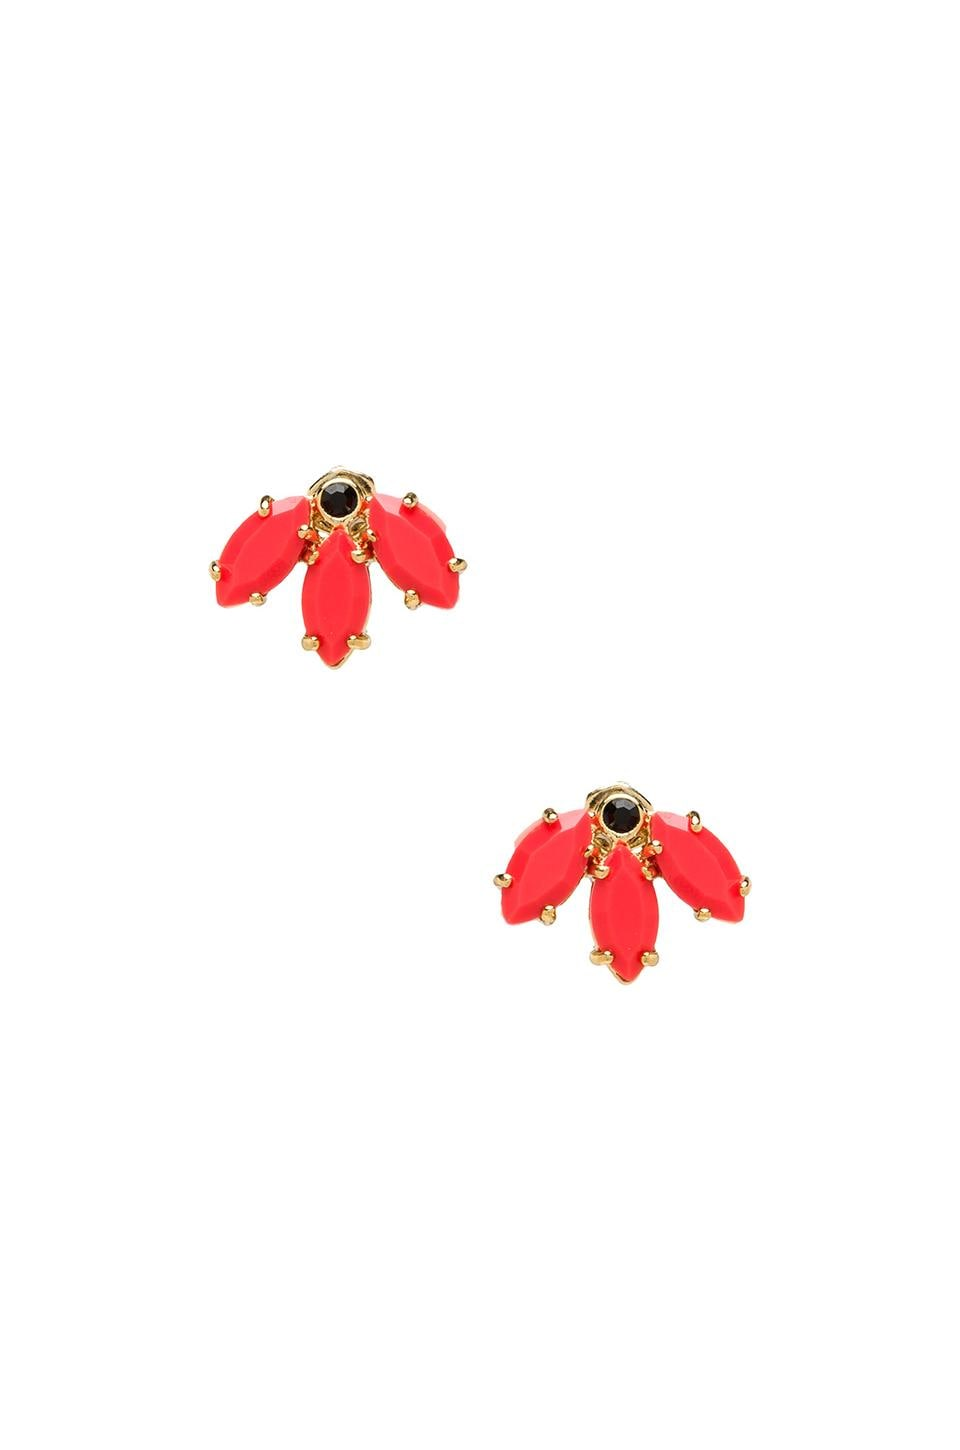 Marc by Marc Jacobs Read My Palmz Marquis Palm Studs in Infrared & Oro